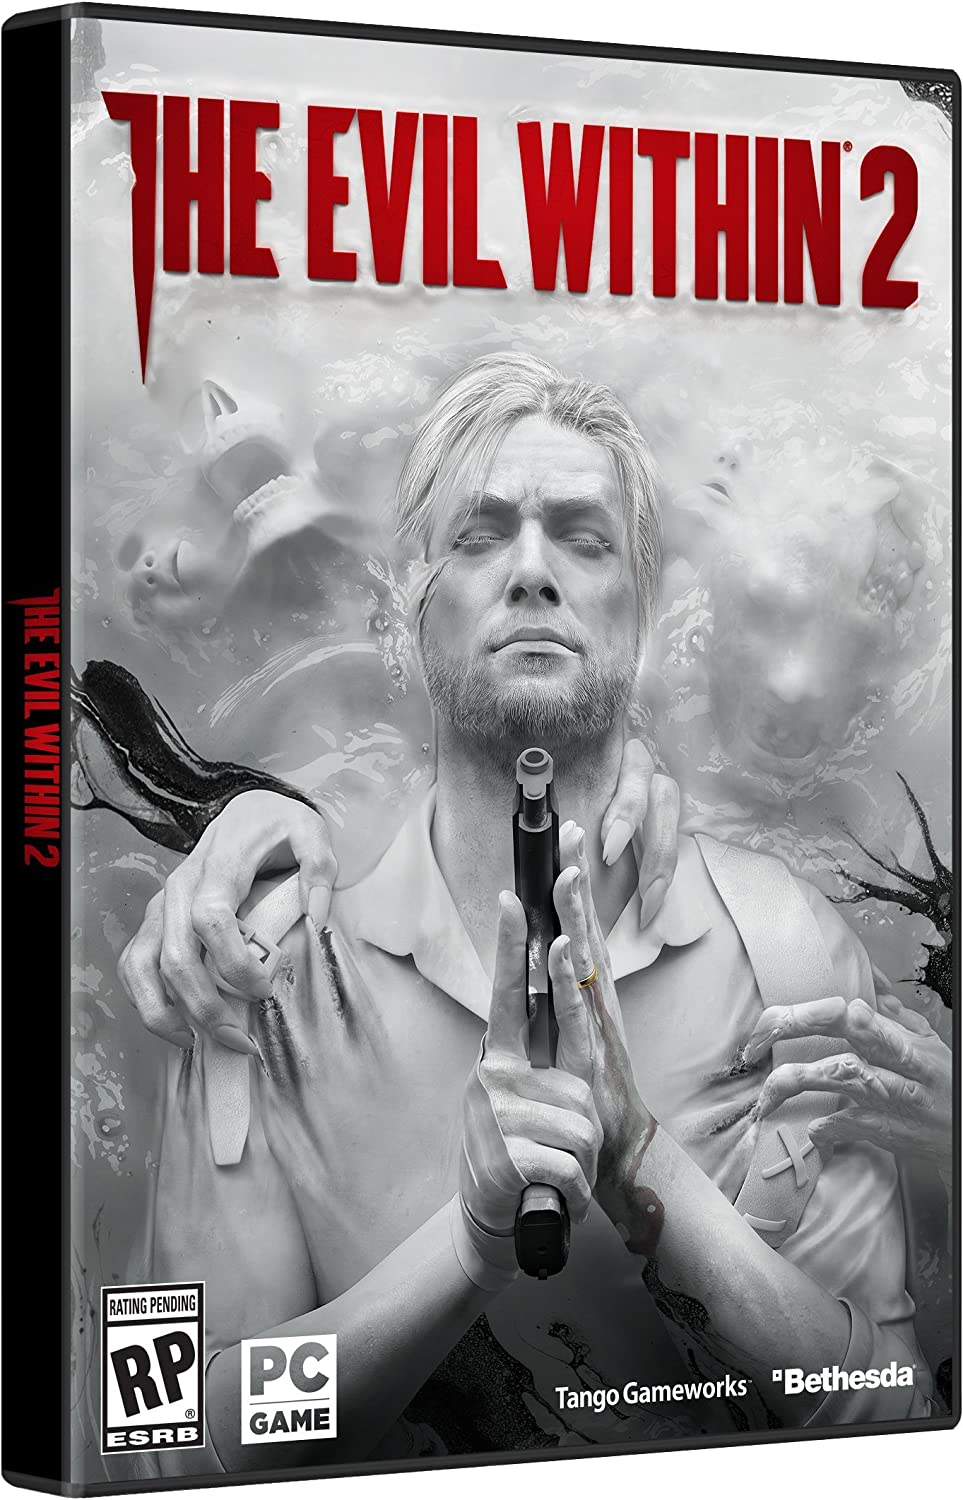 The Evil Within 2 Playstation 4 Bethesda Softworks Resident Revelations 1 Reg 3 Inc Video Games